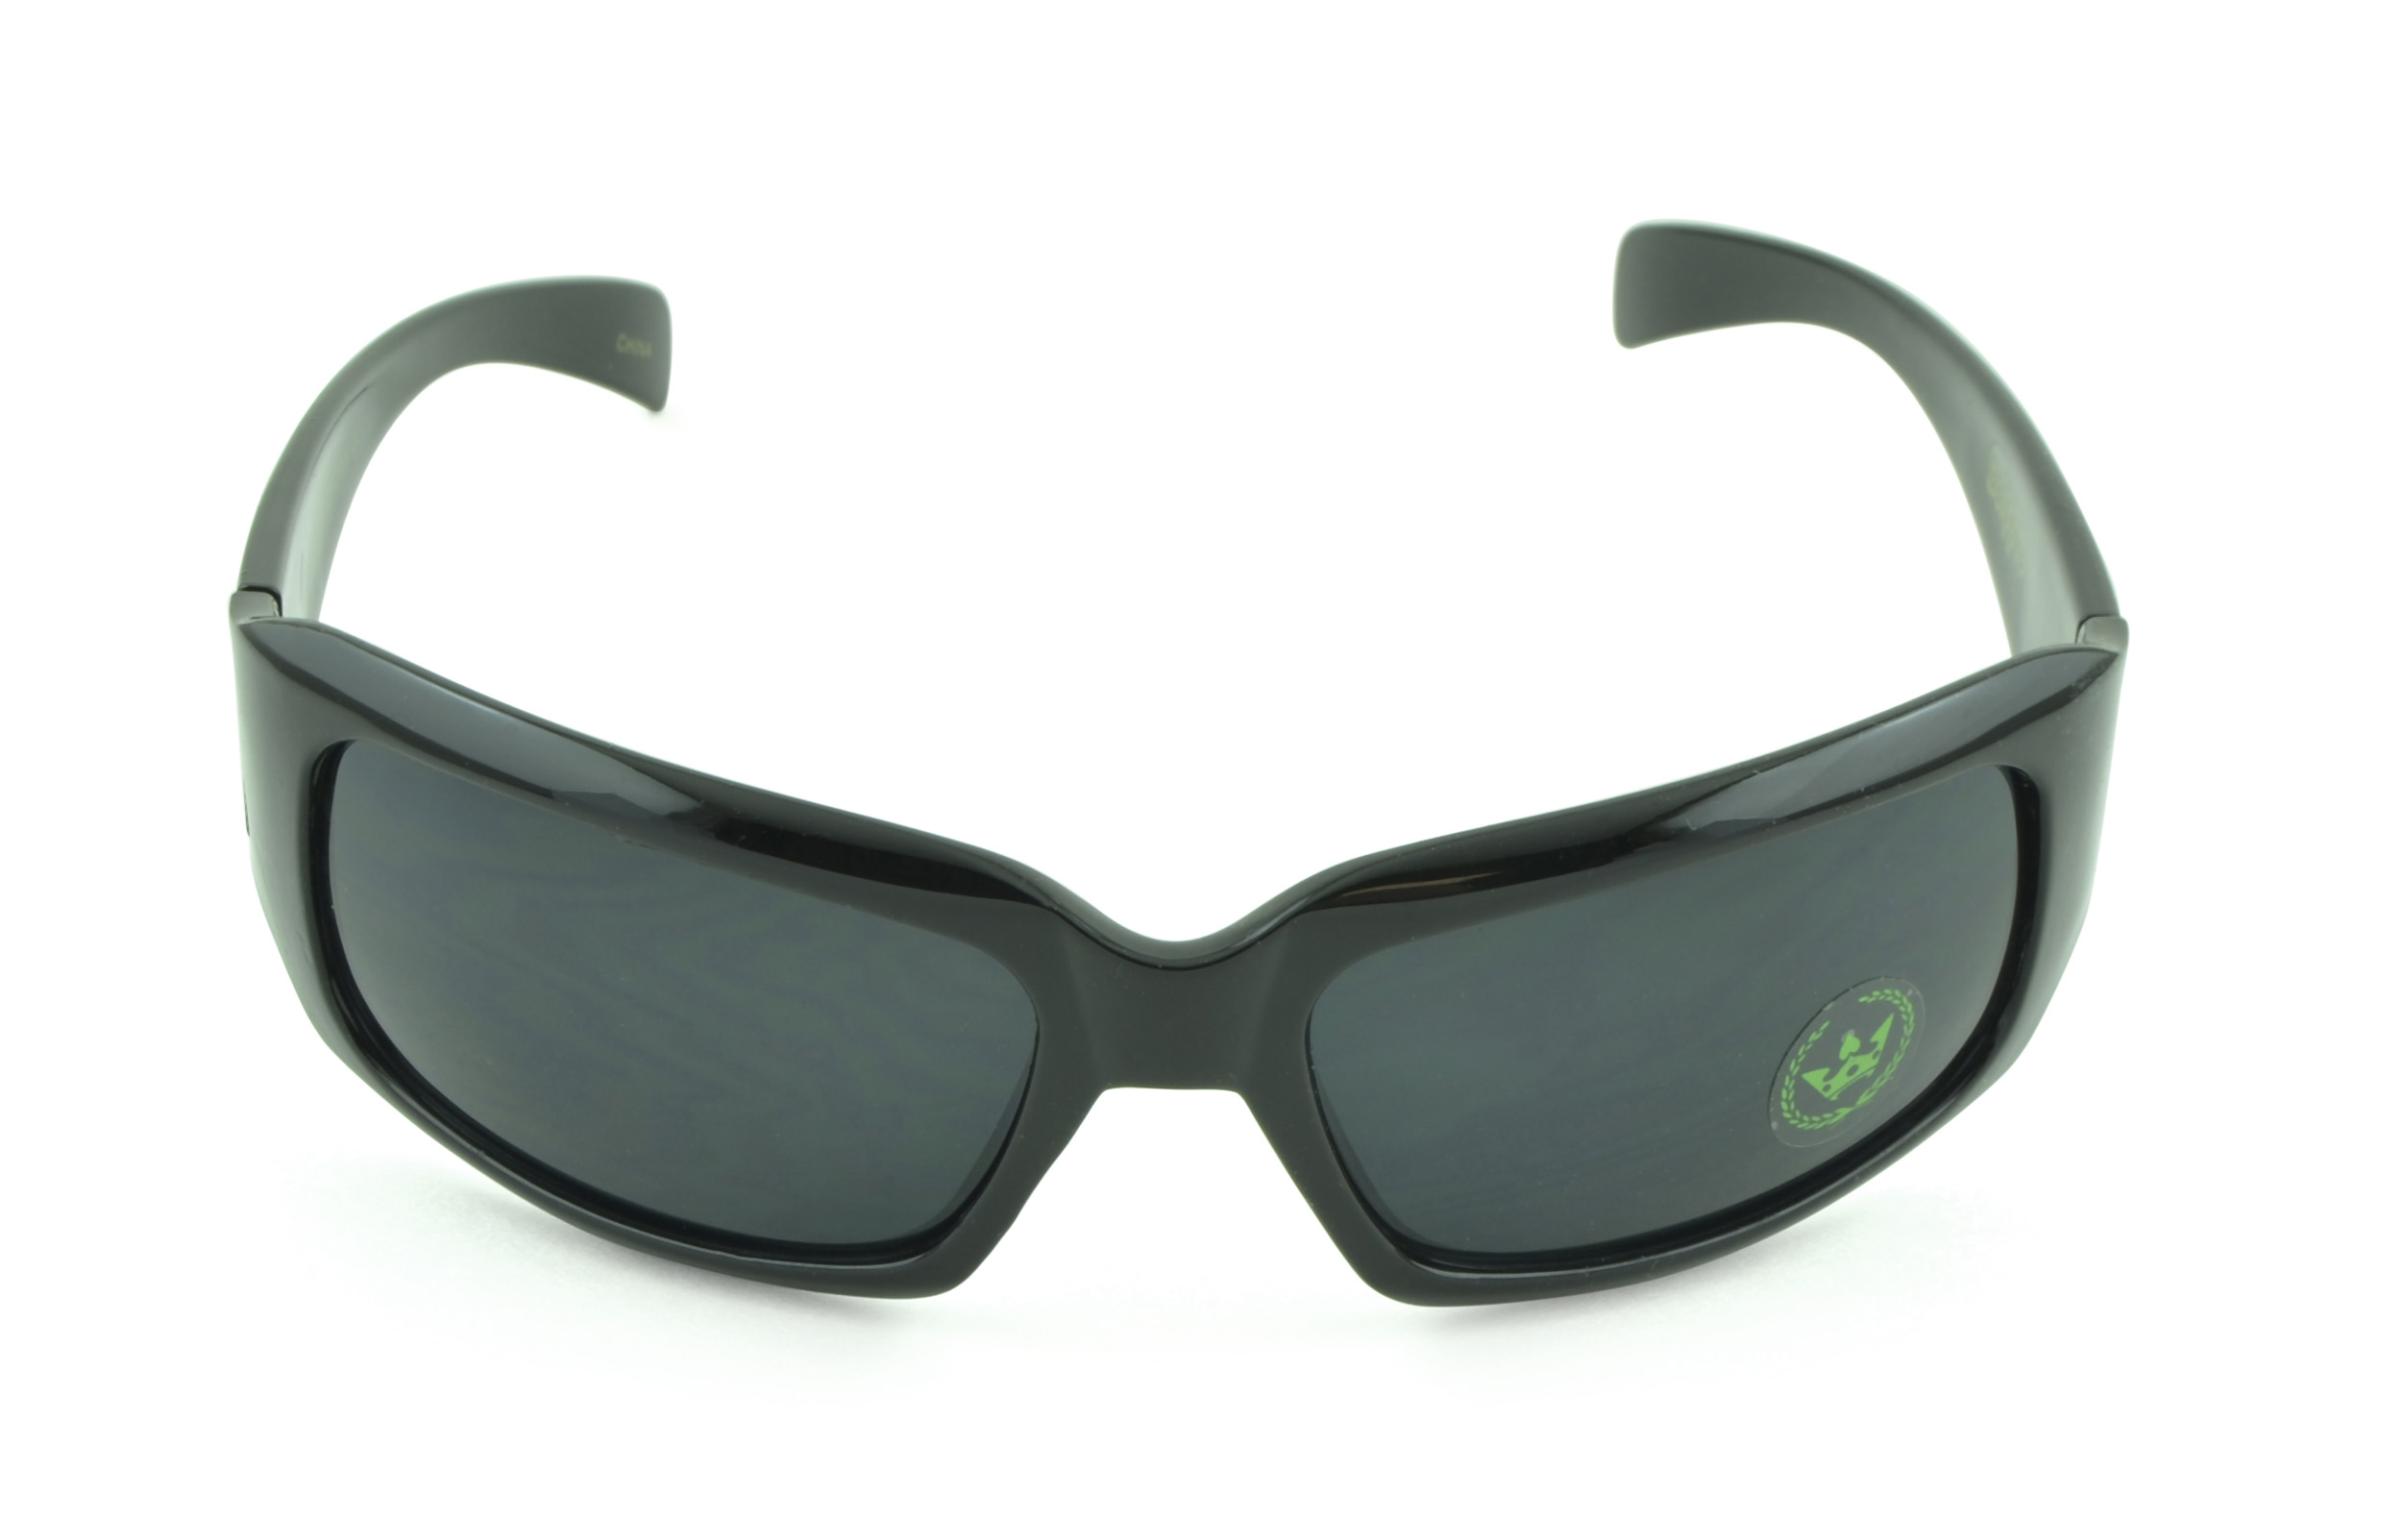 Belle Donne- Gangster Sunglass Hardcore Dark Lens Sunglasses Men Women - Black